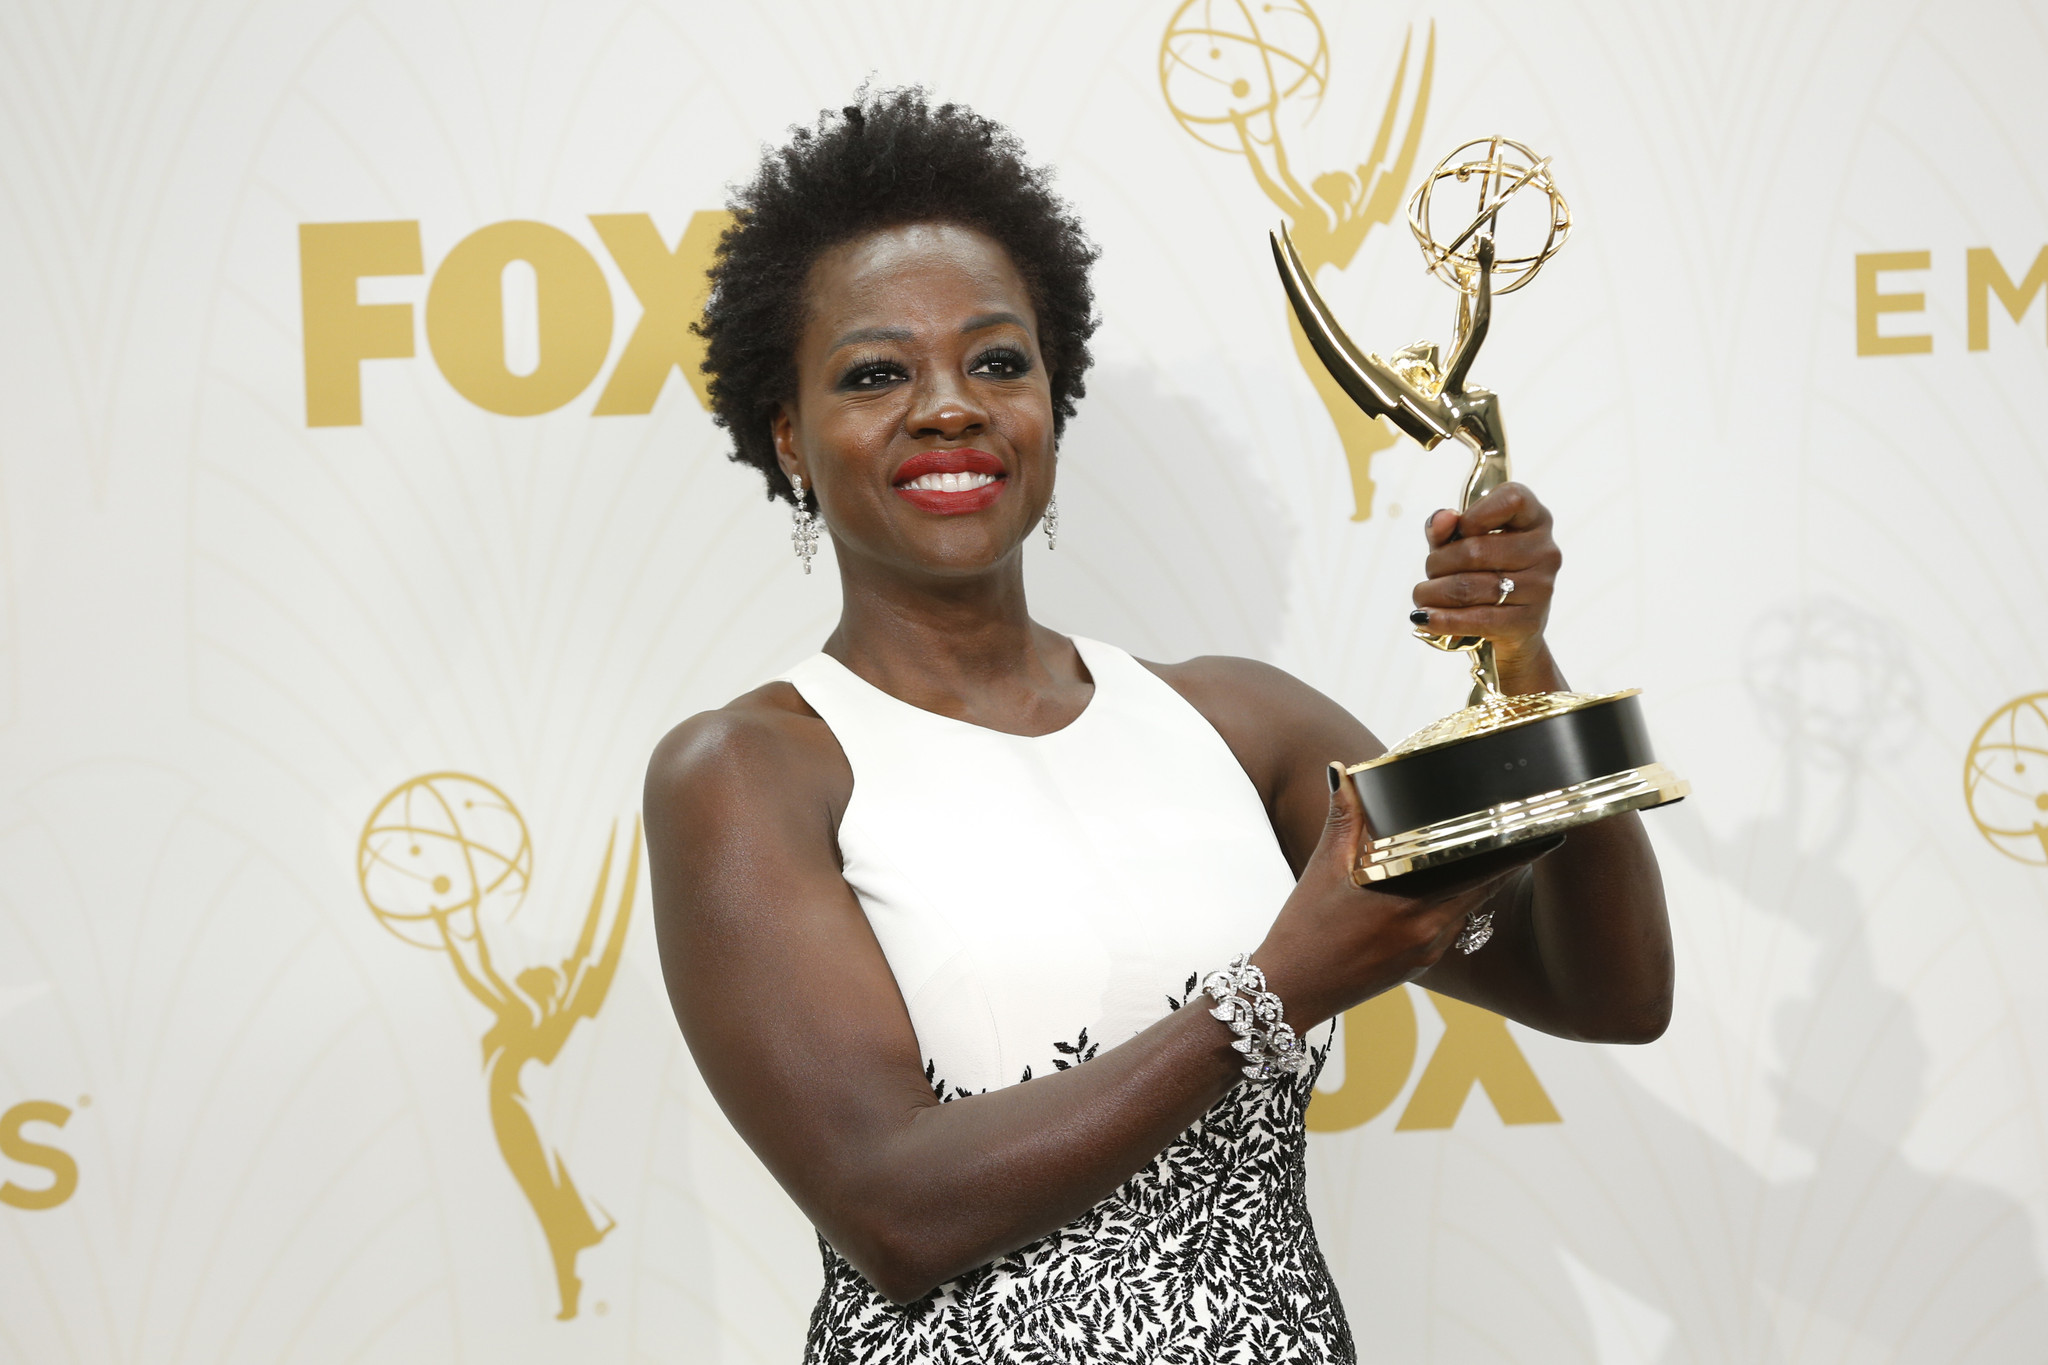 Emmy Awards: Viola Davis Makes History Winning For Lead Drama Actress,  Seizes Opportunity In Her Speech  La Times